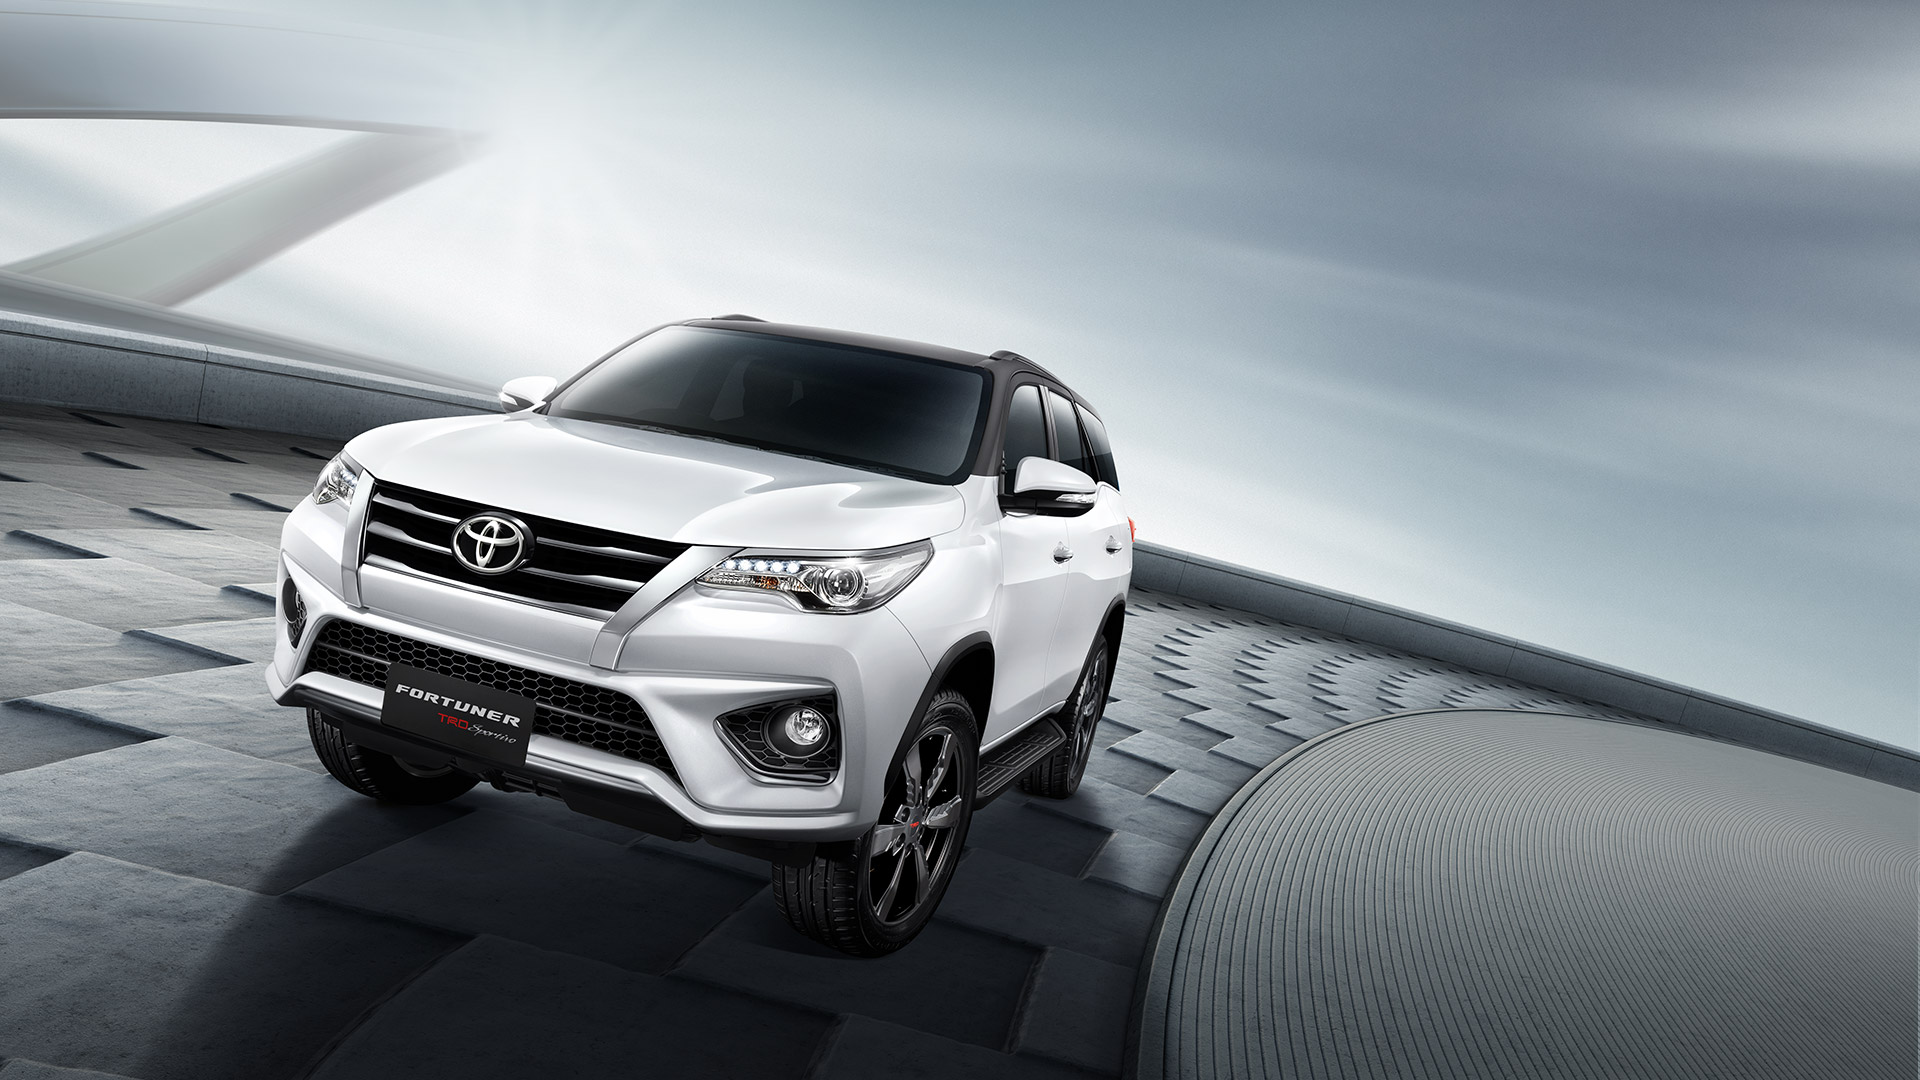 Toyota Fortuner Source - Toyota Fortuner 2020 , HD Wallpaper & Backgrounds